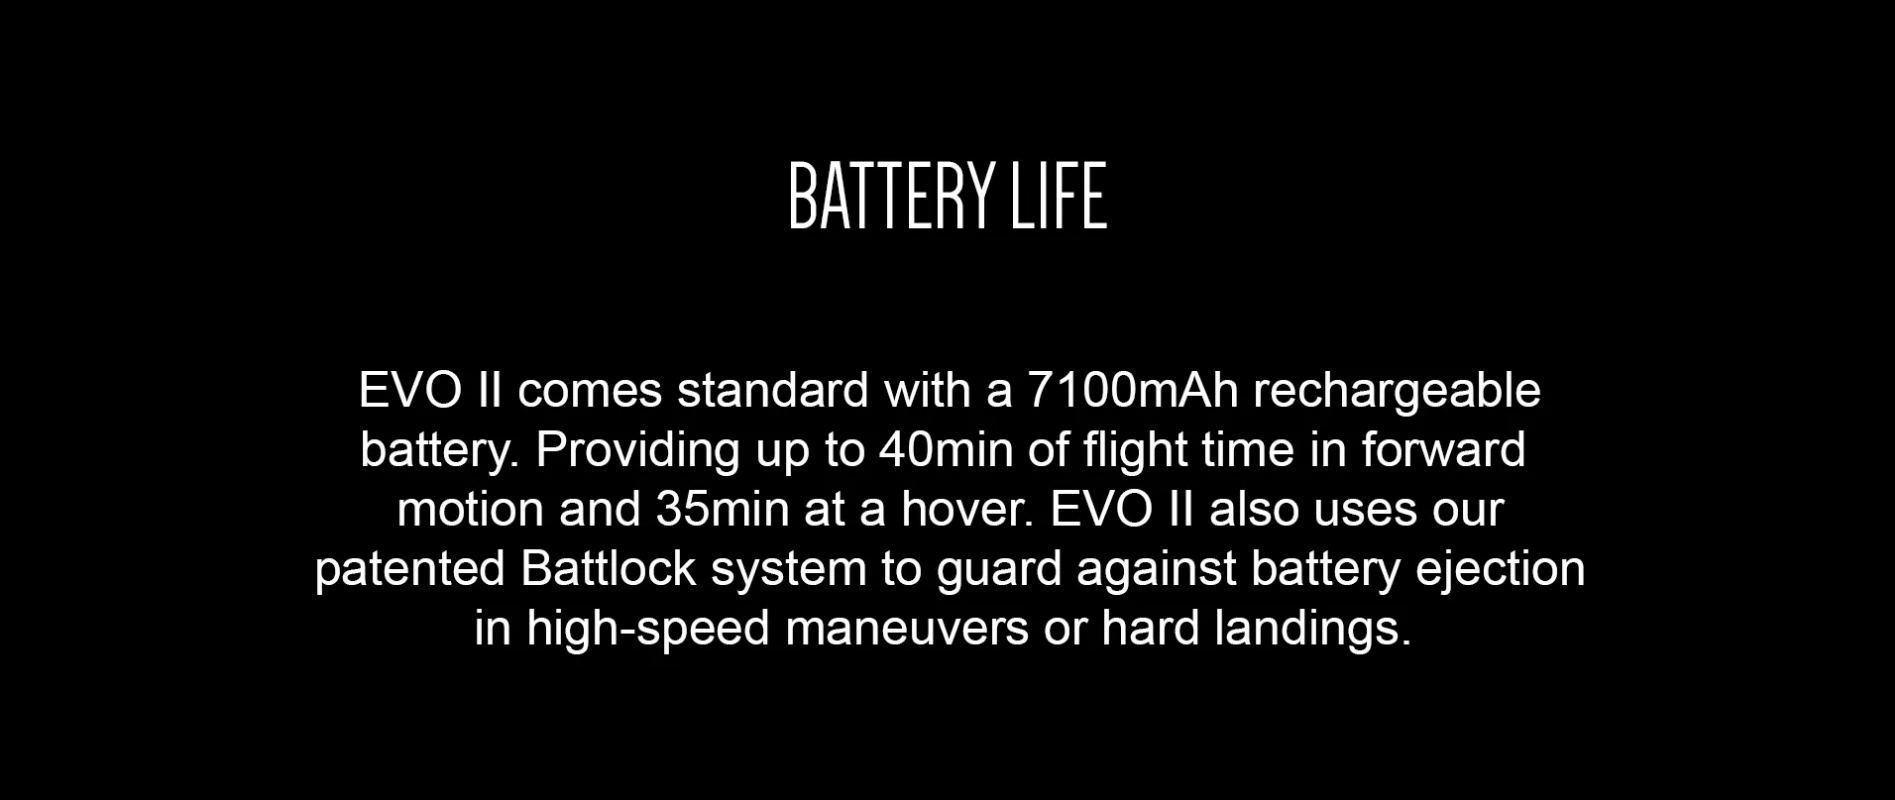 autelevo2batterylife.png